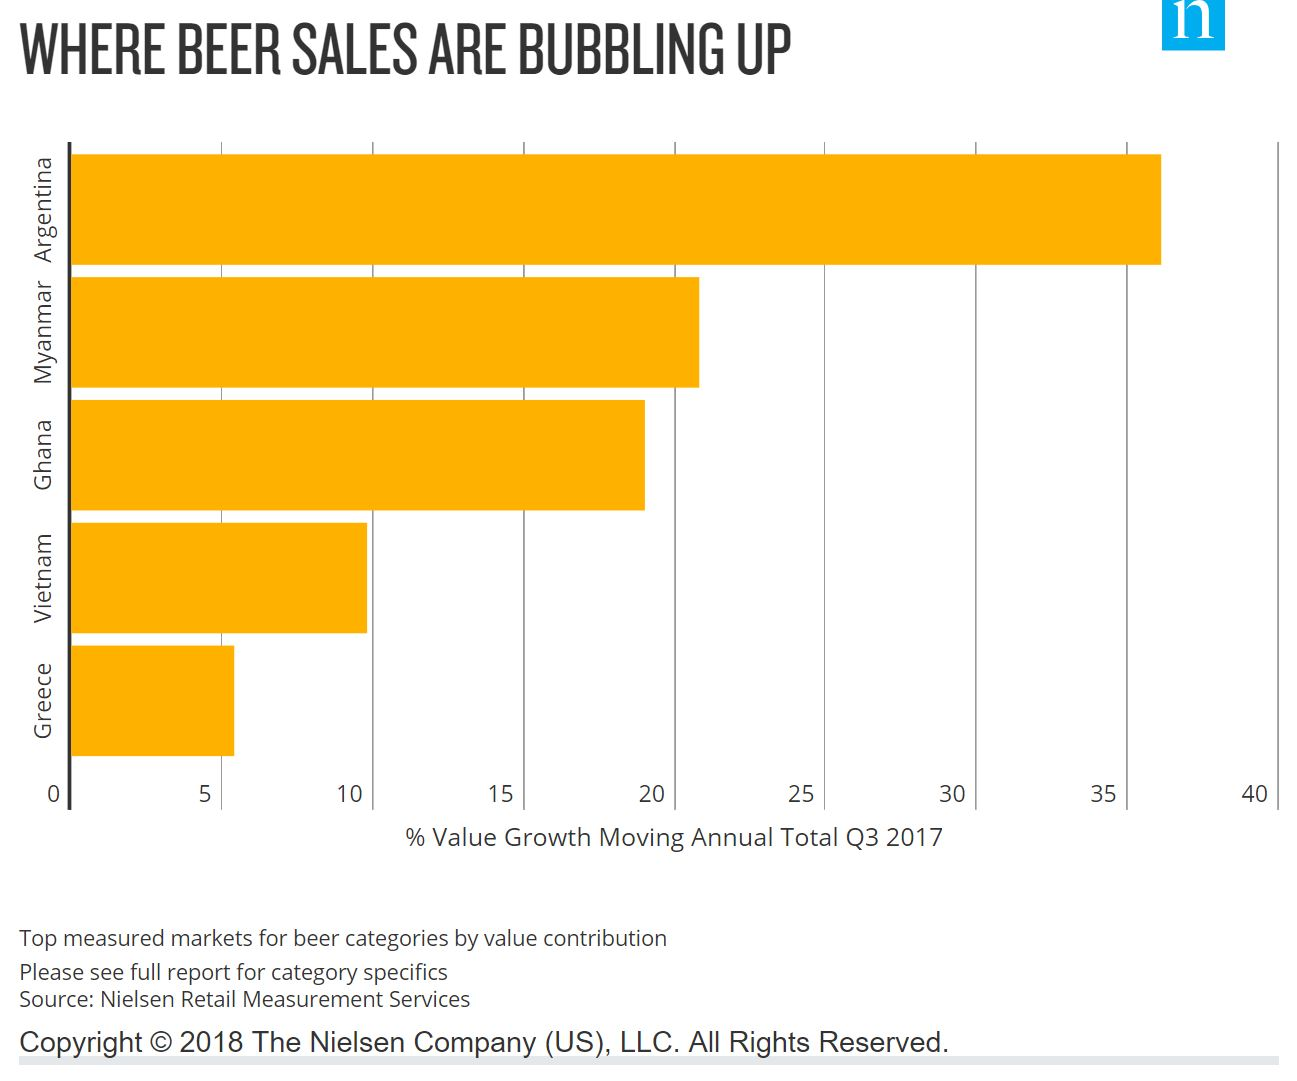 BEER CONSUMERS IN EMERGING MARKETS OFFER A FLAVORFUL, FLOURISHING FUTURE